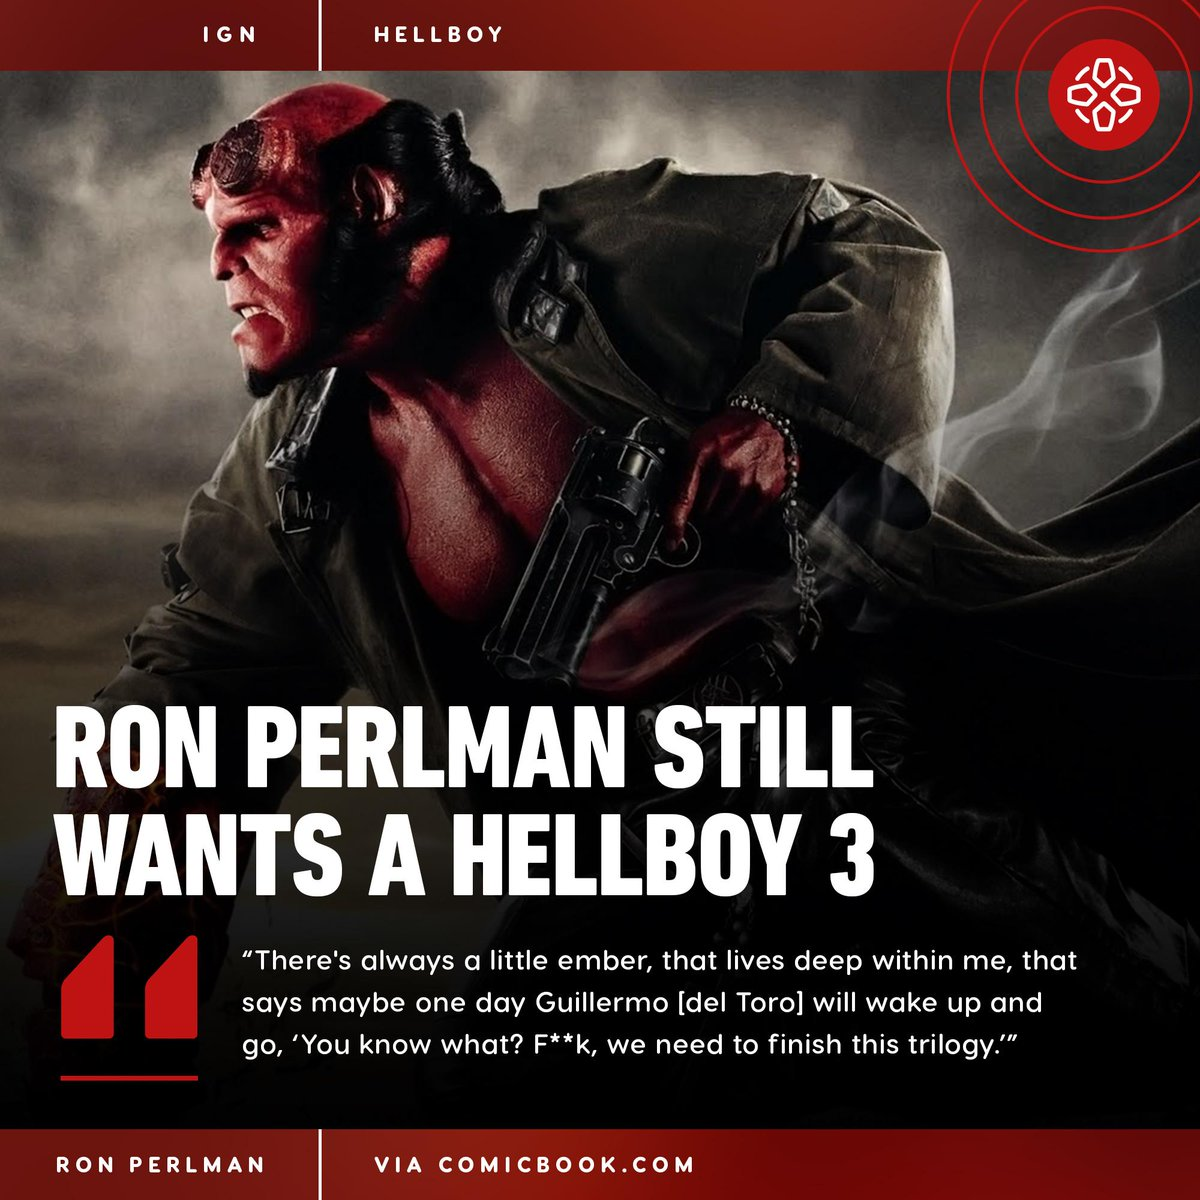 Ron Perlman says he hasn't seen the widely-panned Hellboy reboot starring David Harbour, though he was initially approached to star in it.